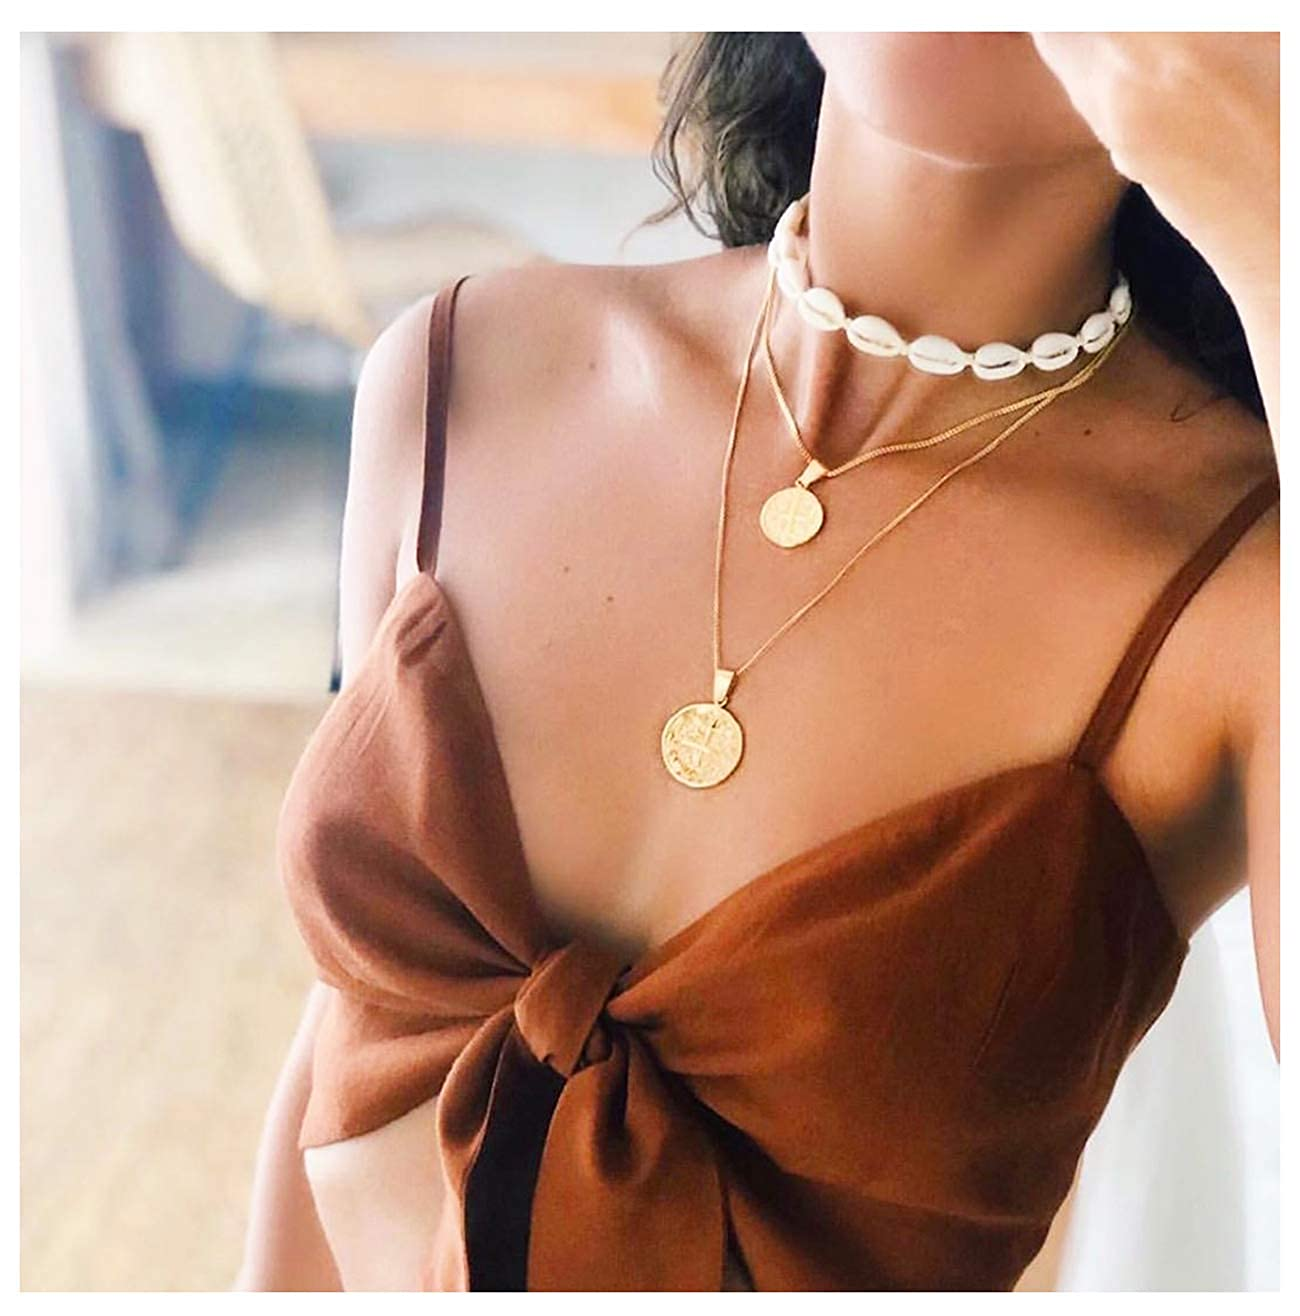 CENAPOG Cowrie Shell Choker Necklace for Women Puka Shell Necklace Corded Seashell Necklace Hawaiian Beach Jewelry